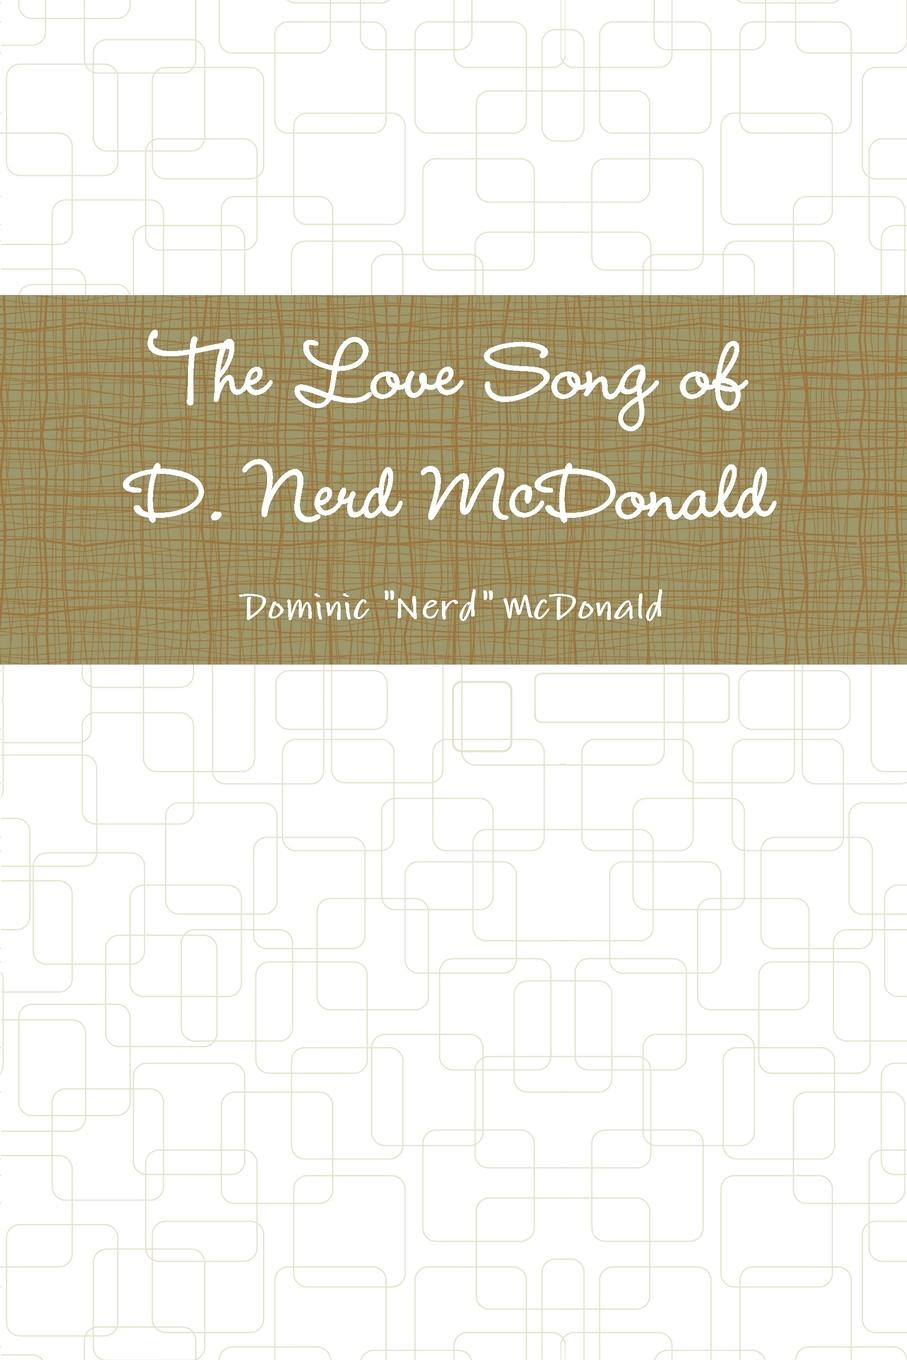 Dominic Nerd McDonald The Love Song of D. Nerd McDonald cagy d oulos love by definition